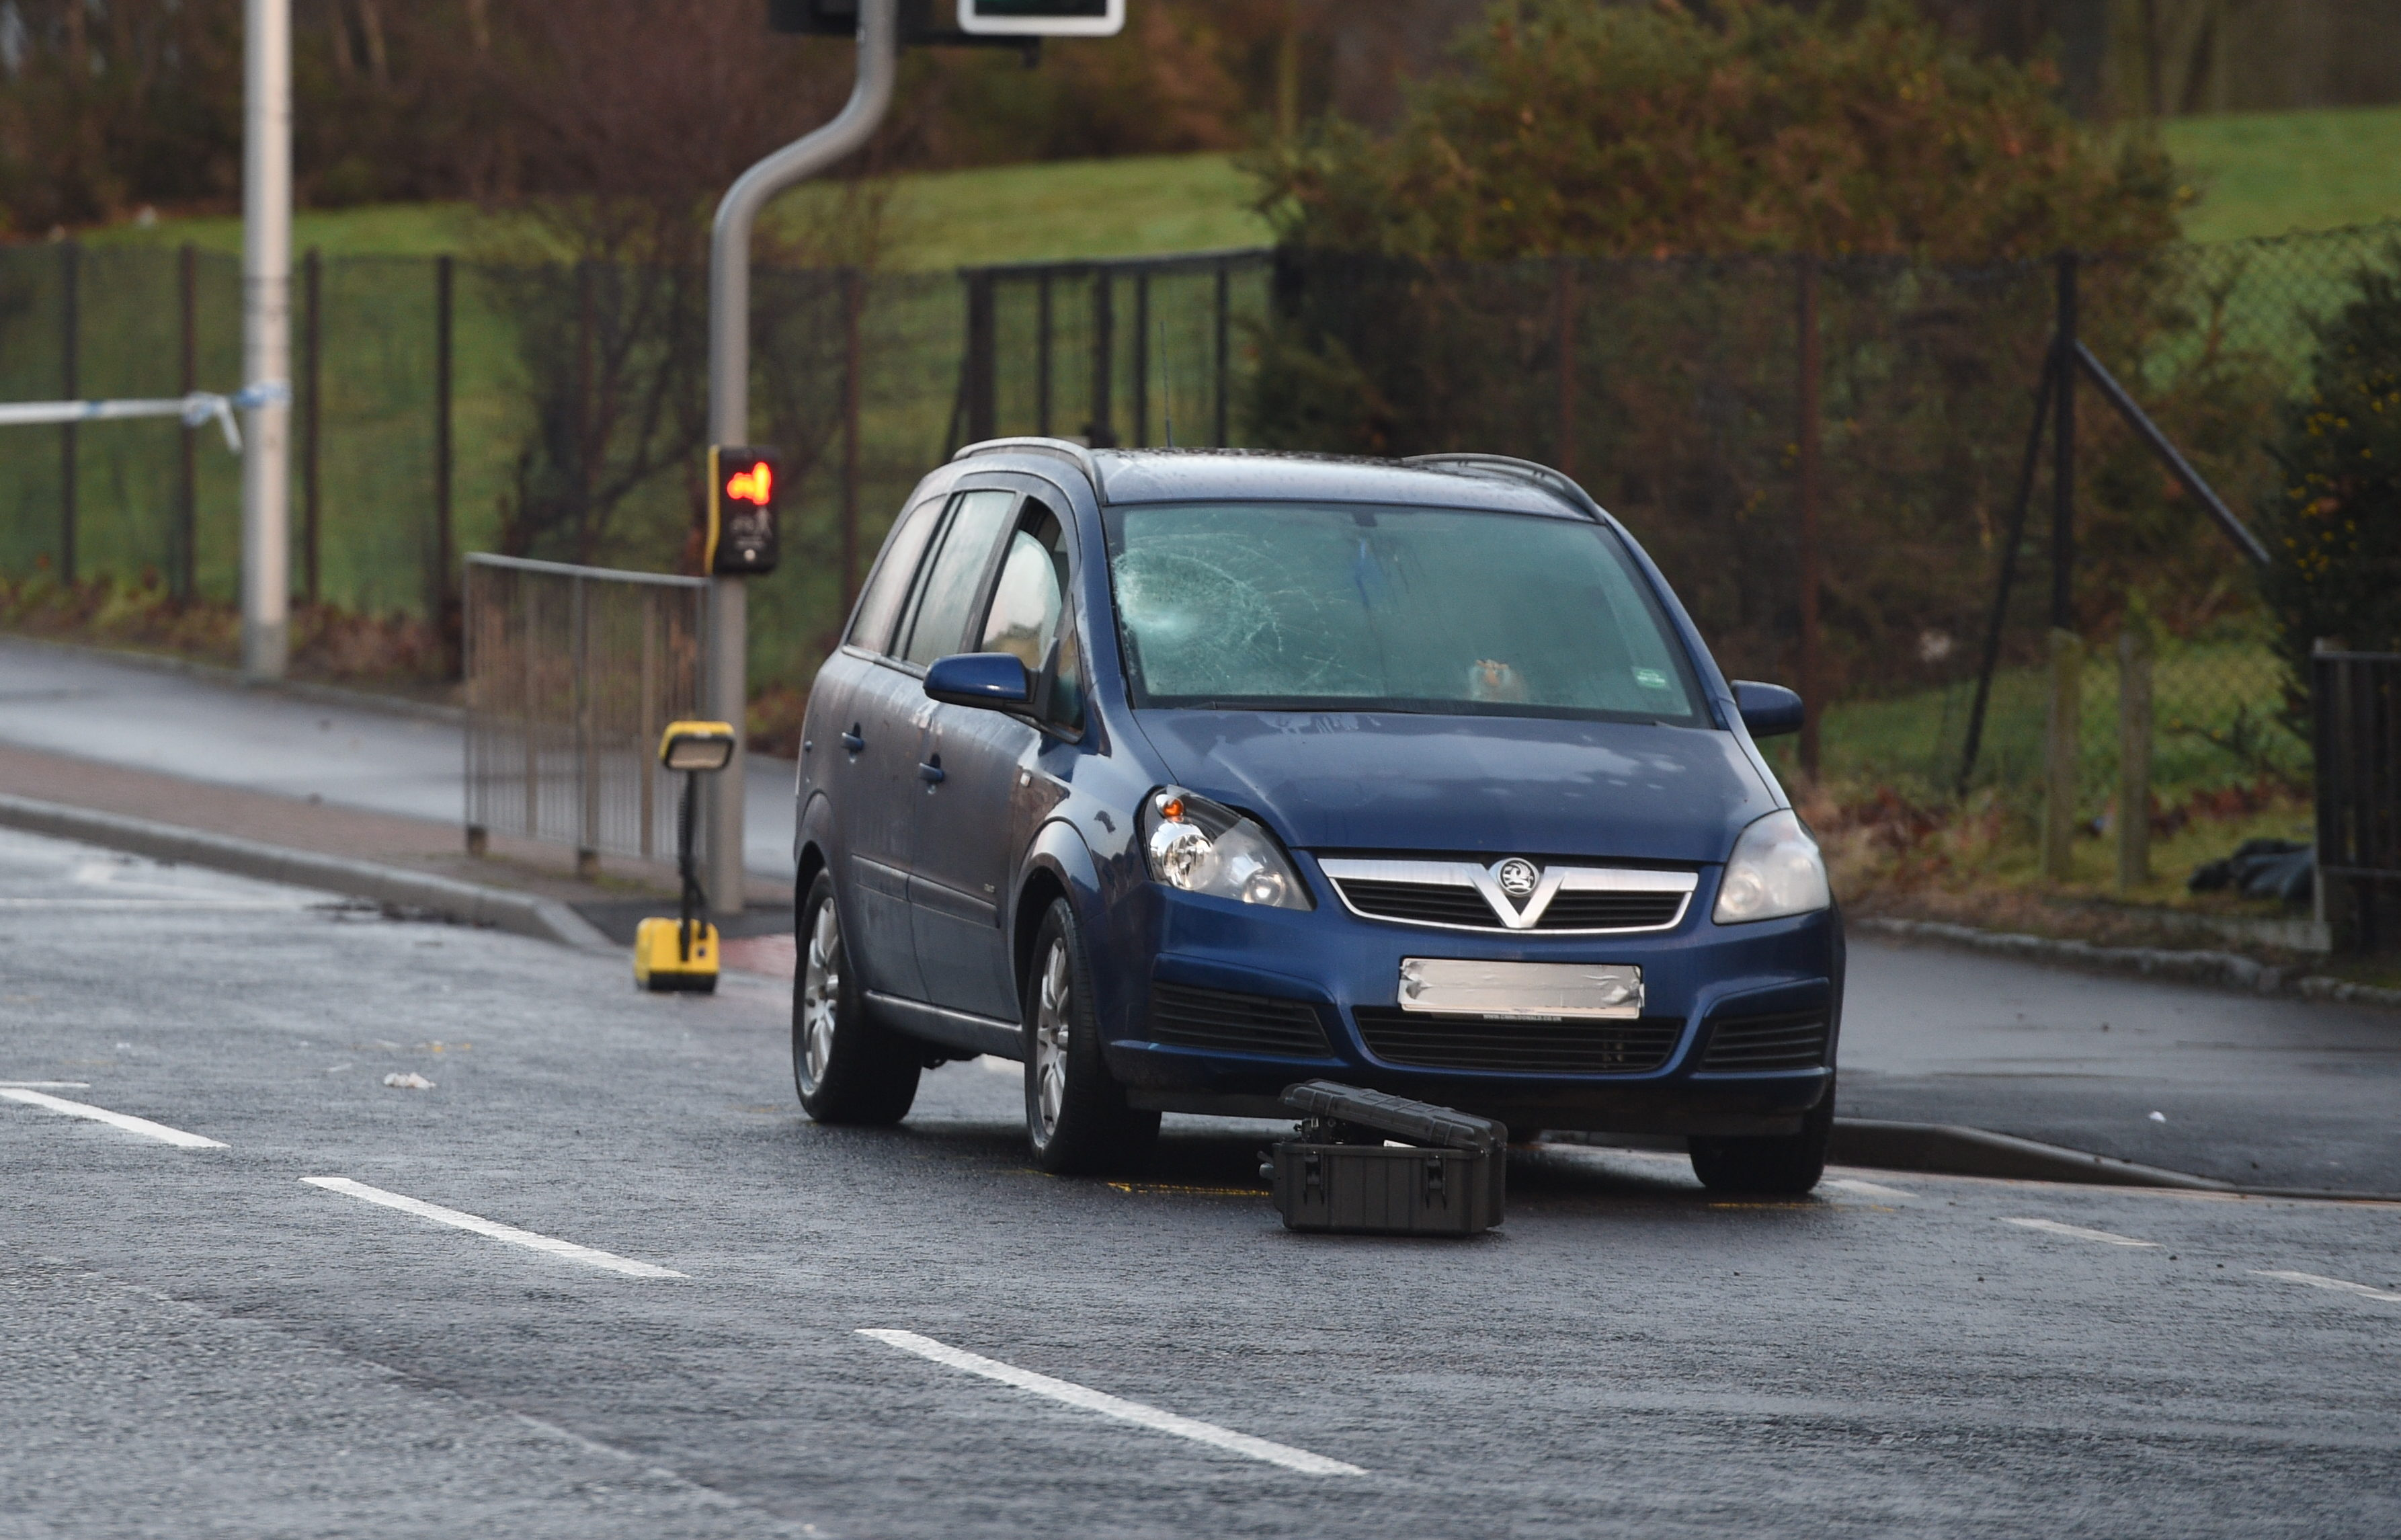 A woman was struck by a car today on Tillydrone Avenue near Aberdeen University's Zooology building